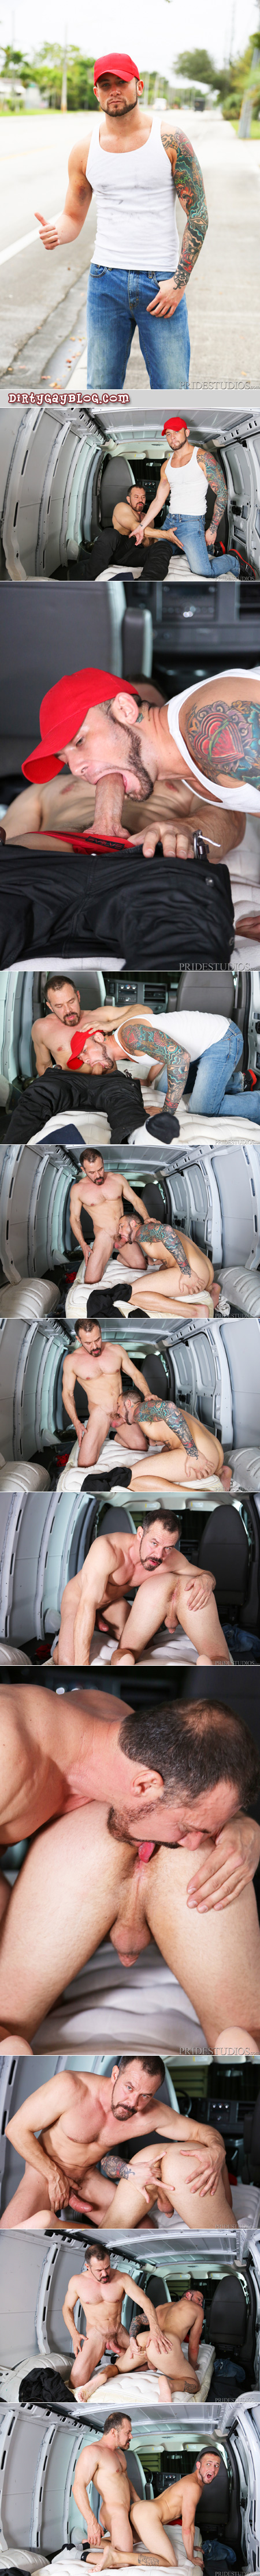 Muscle Daddy picks up a male hitchhiker and fucks him in the back of his windowless van.